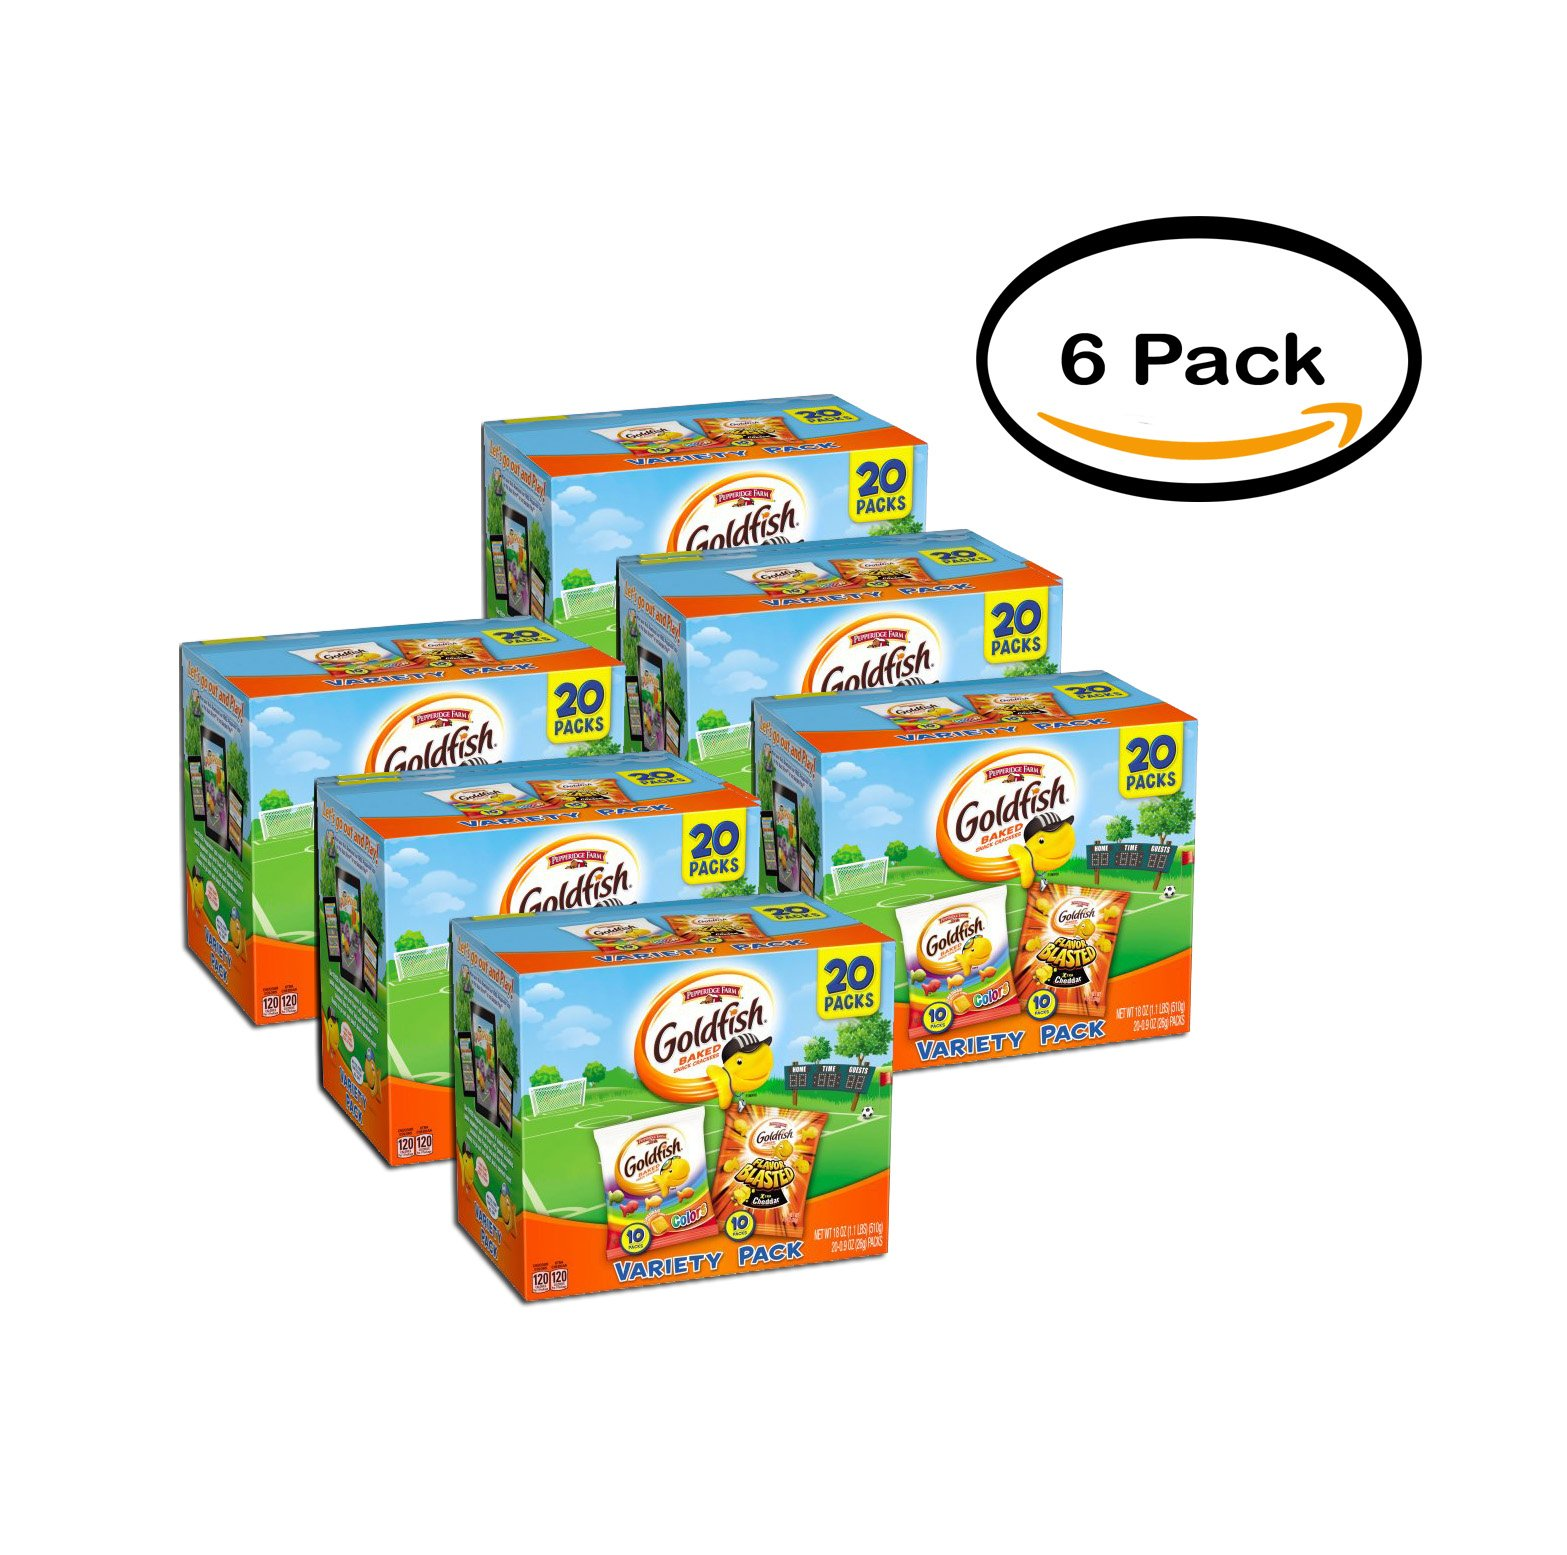 PACK OF 6 - Pepperidge Farm Goldfish Colors/Flavor Blasted Xtra Cheddar Baked Snack Crackers Variety Pack 20 ct Box by Pepperidge Farm